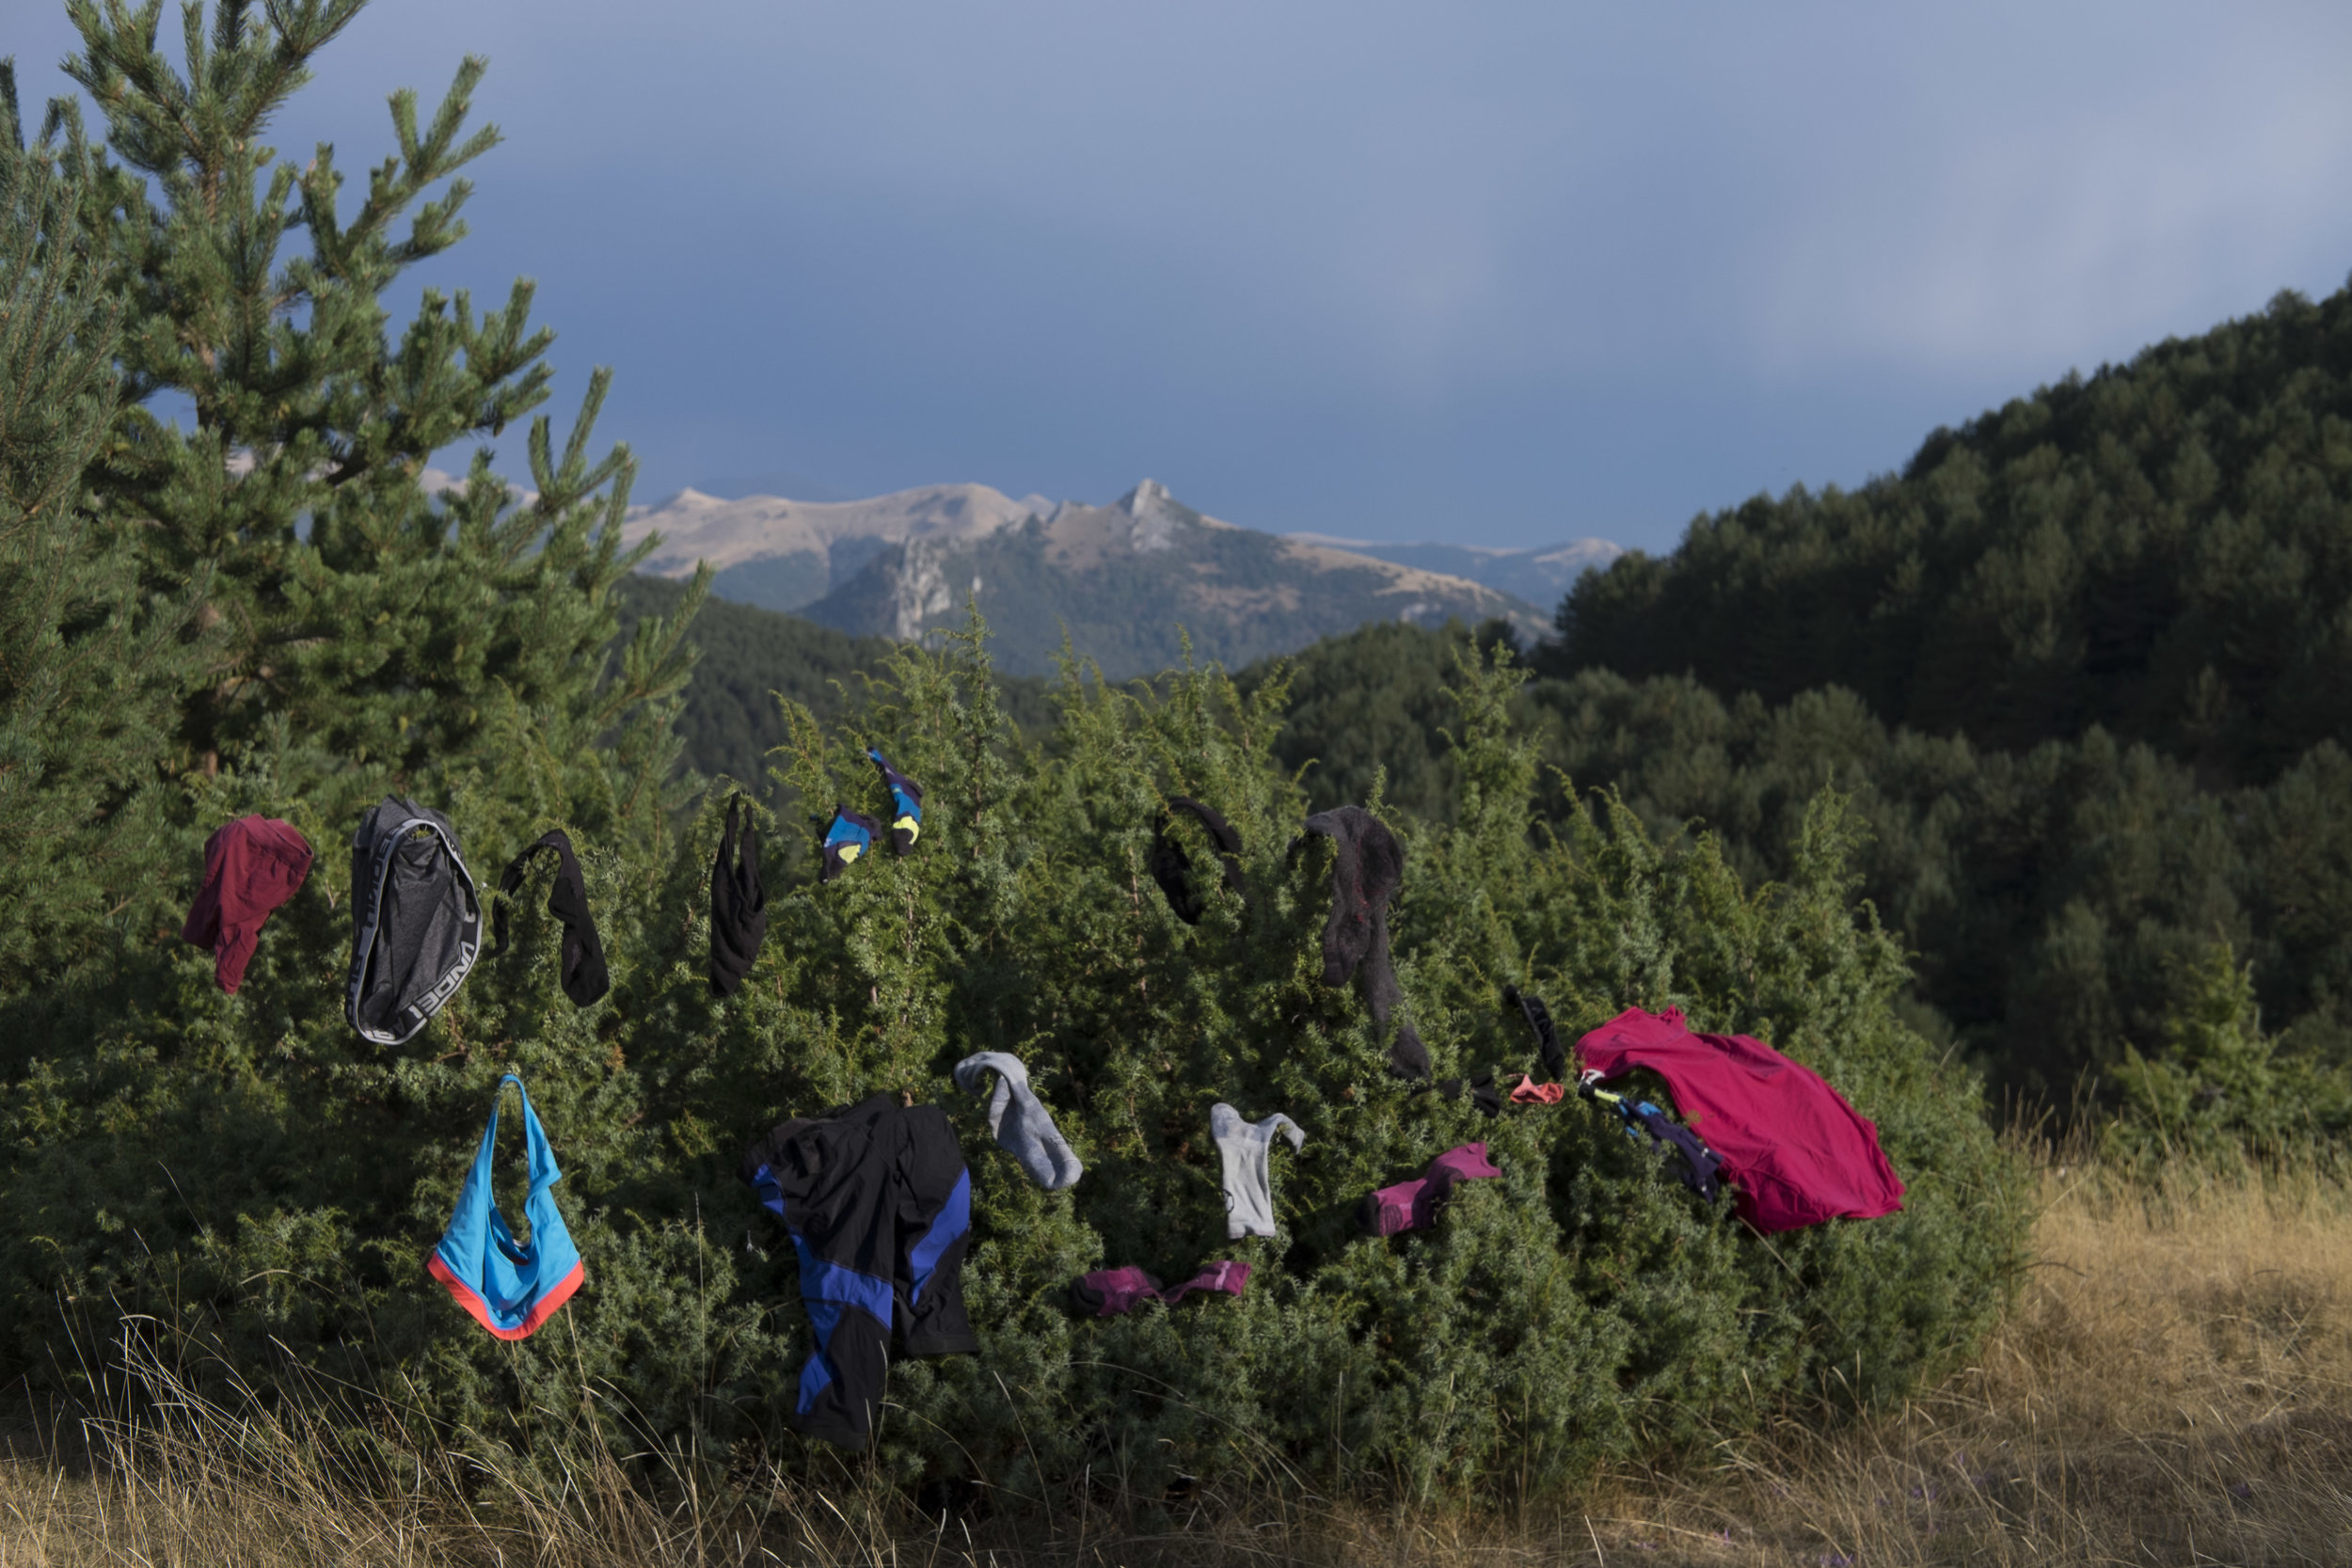 Drying our clothes on the trail.